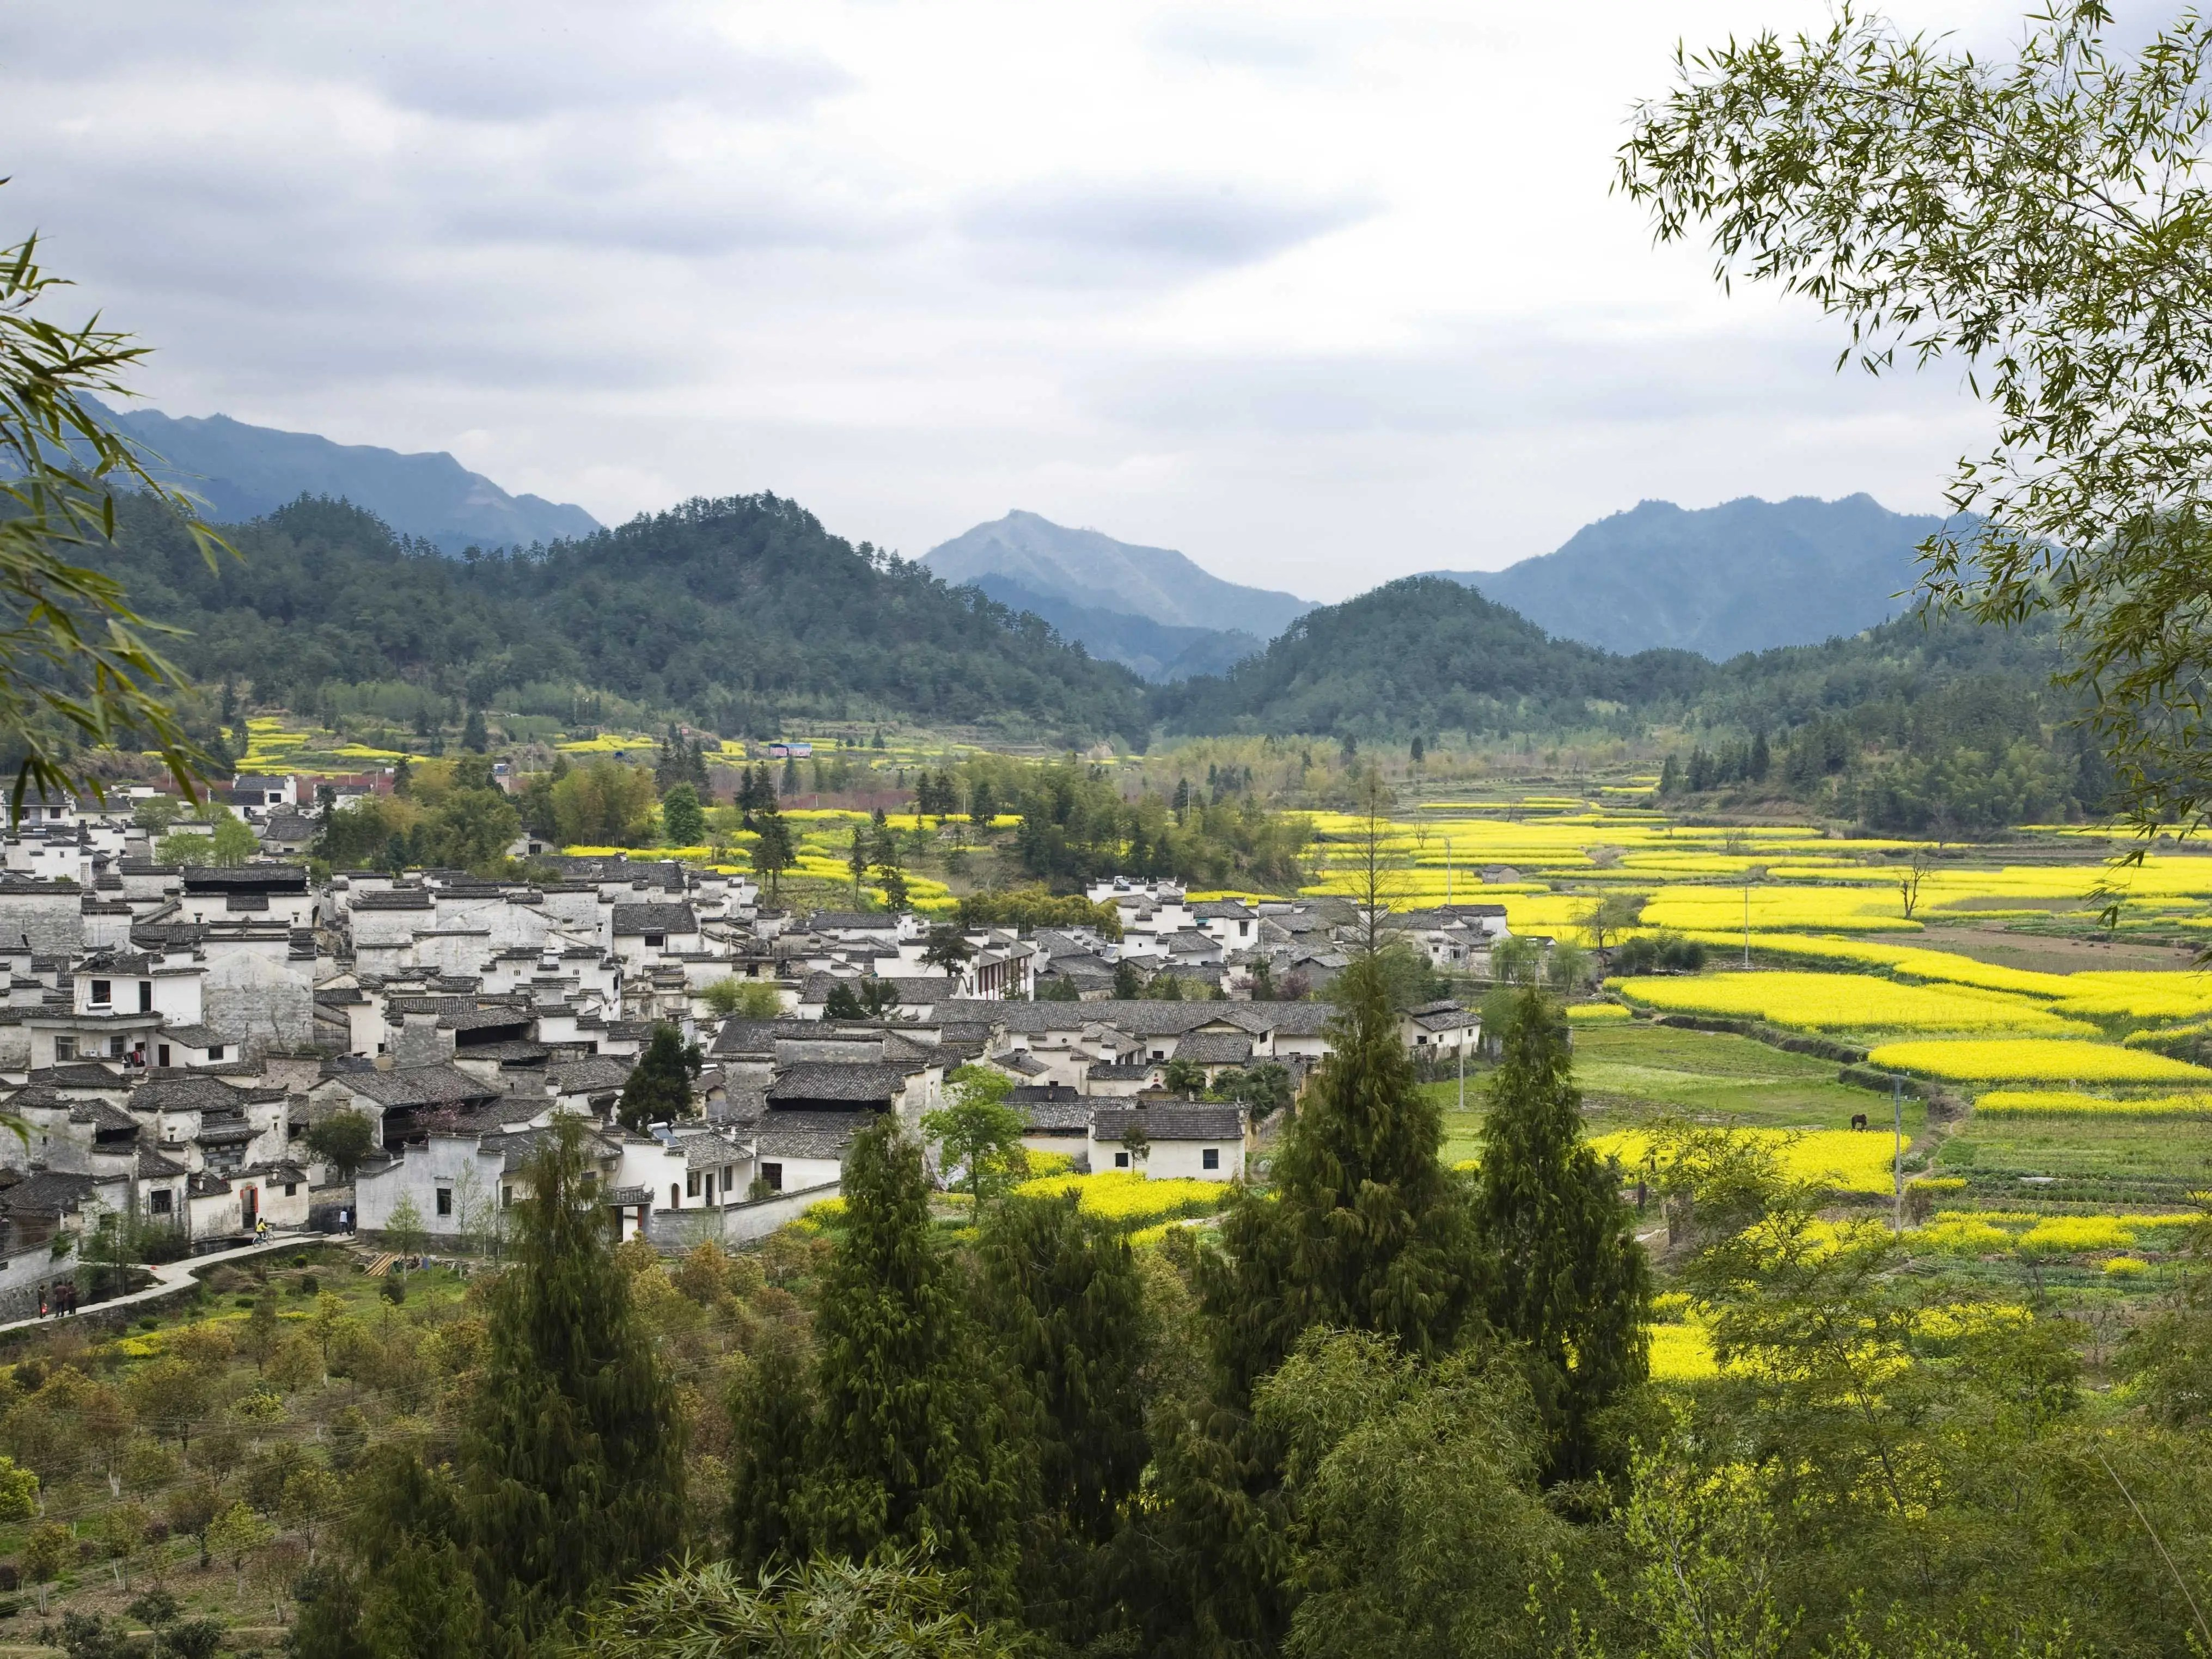 The Xidi village is located in the Yi County of the historical Guizhou region of Anhui province, China, and was declared a UNESCO World Heritage Site alongside the village of Hongcun. The village still maintains wooden residences from the Ming and Qing dynasties, many of which are open to the public.